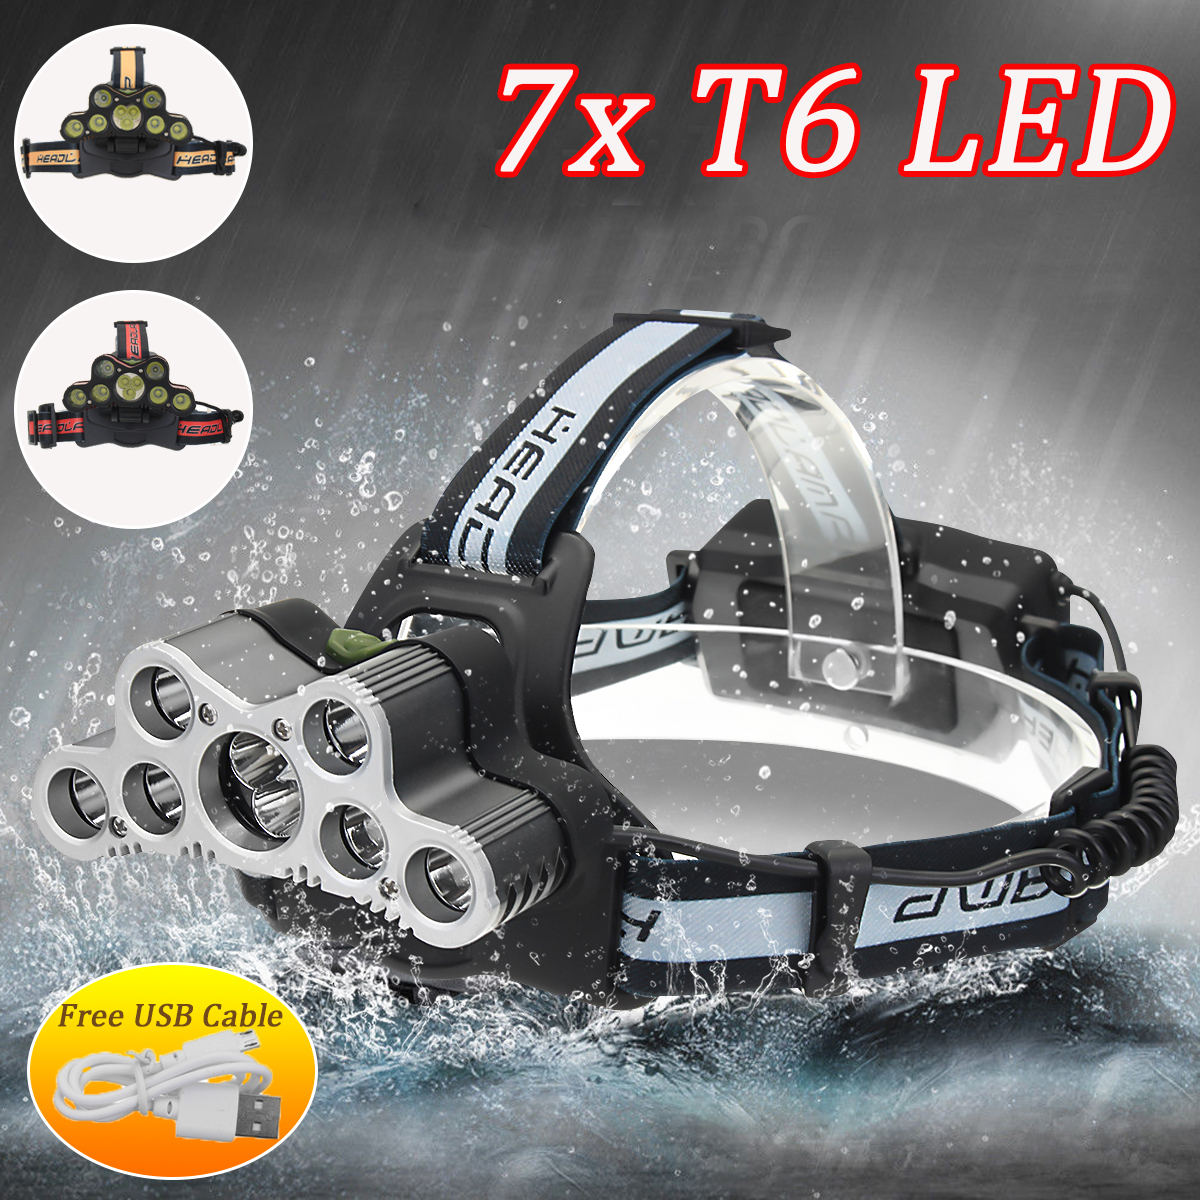 Elfeland 5000Lumens 7xT6 LED USB Rechargeable Headlight Headlamp Torch with SOS Help Whistle 6 Modes Flashlight For Camping Hiking